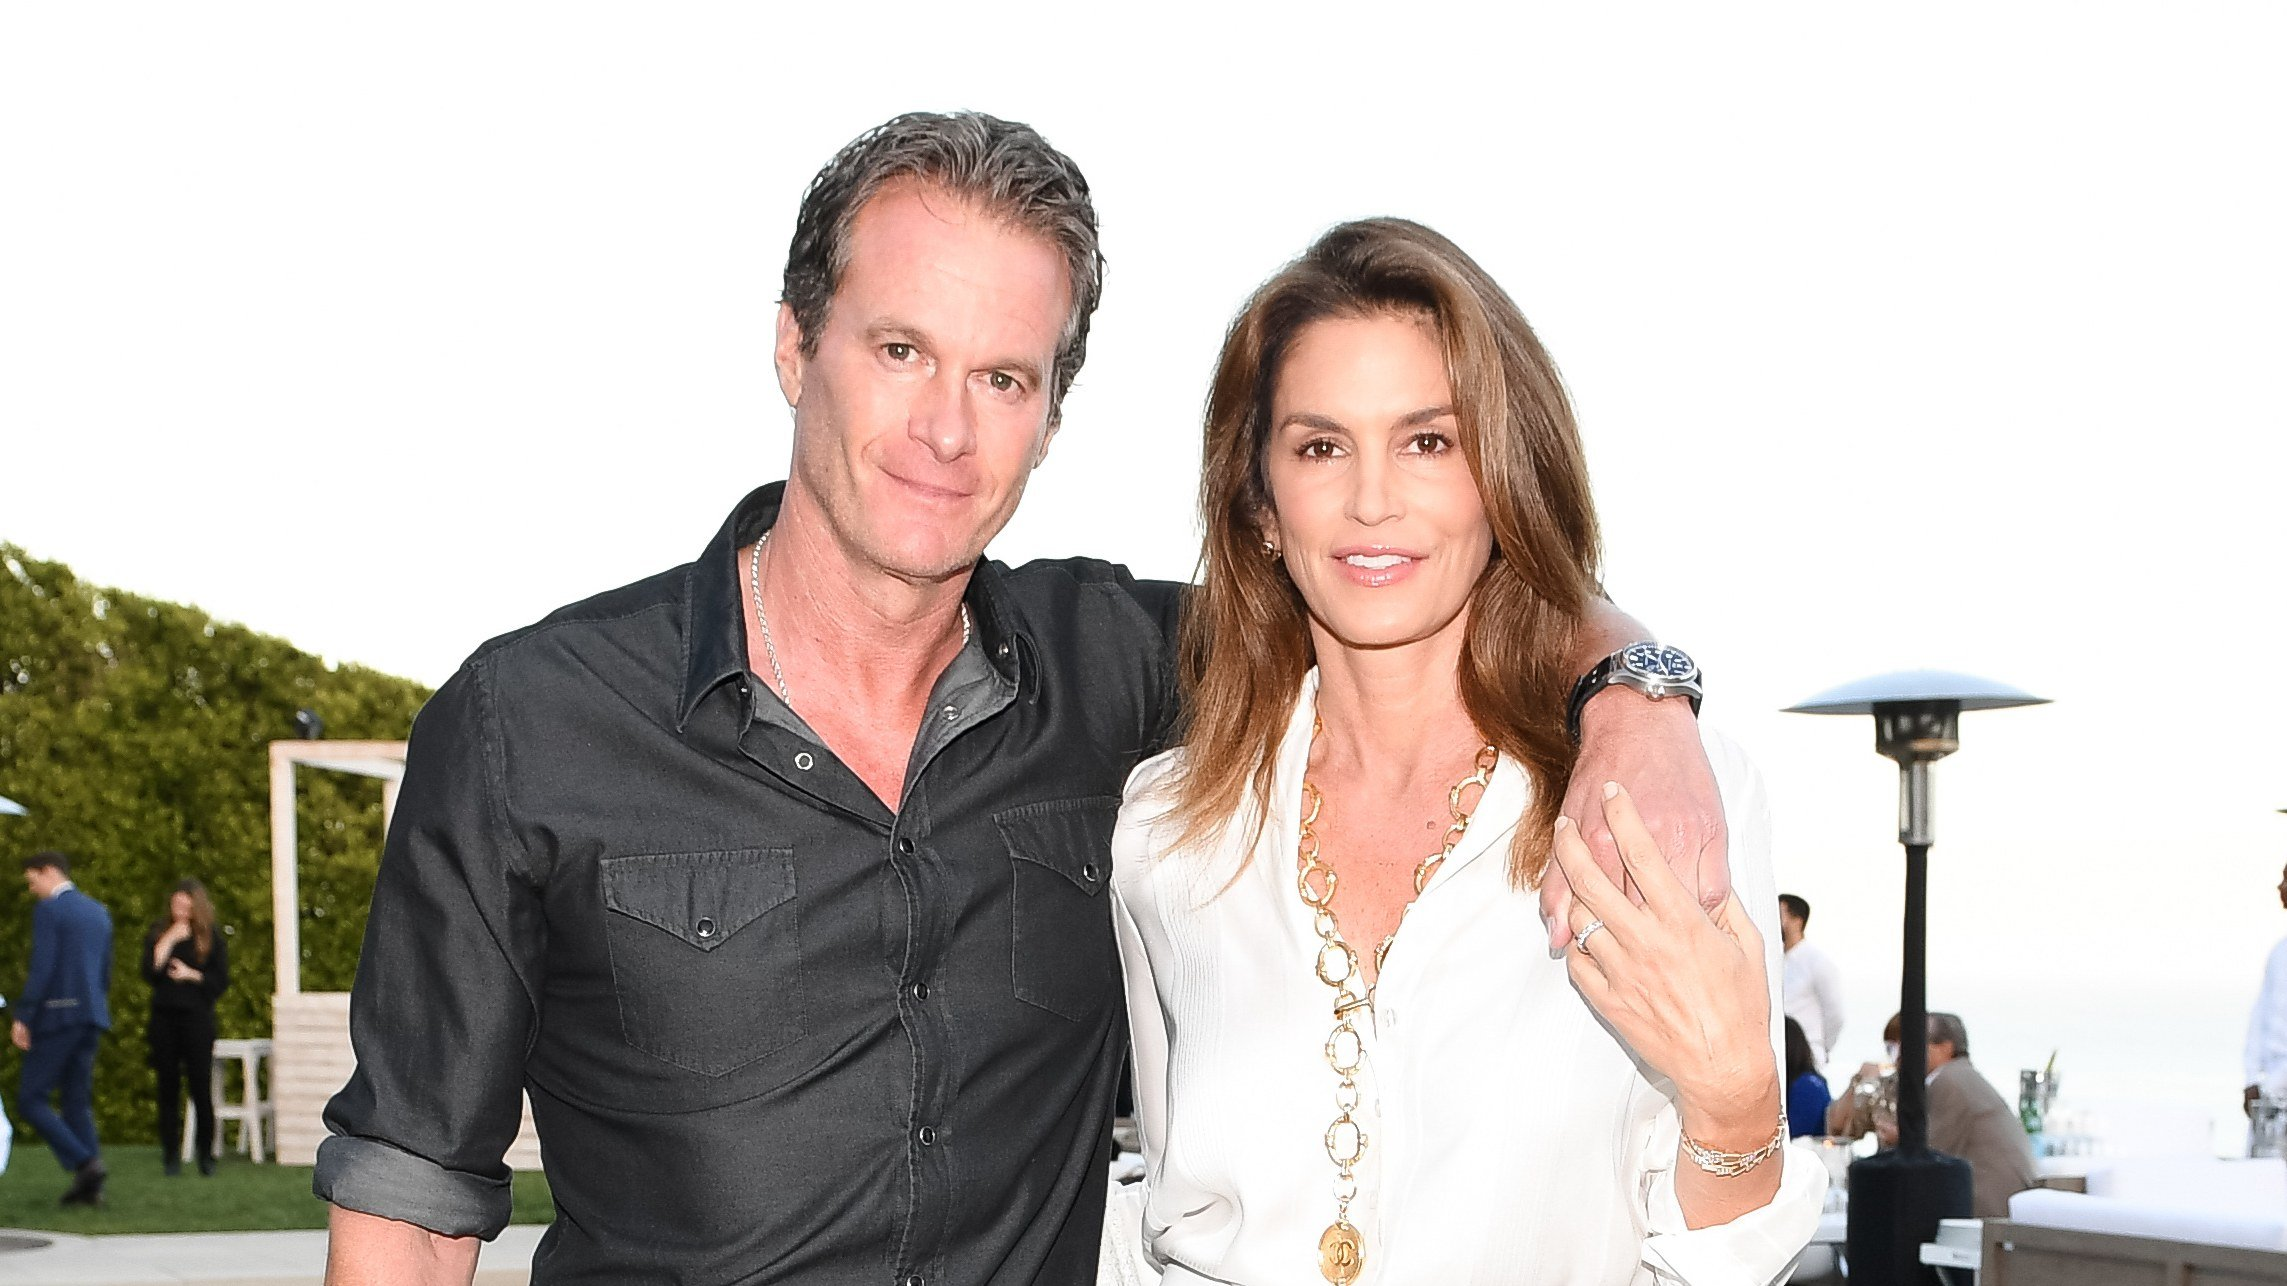 See Inside the Malibu Home Cindy Crawford and Rande Gerber Just Sold for $45 Million